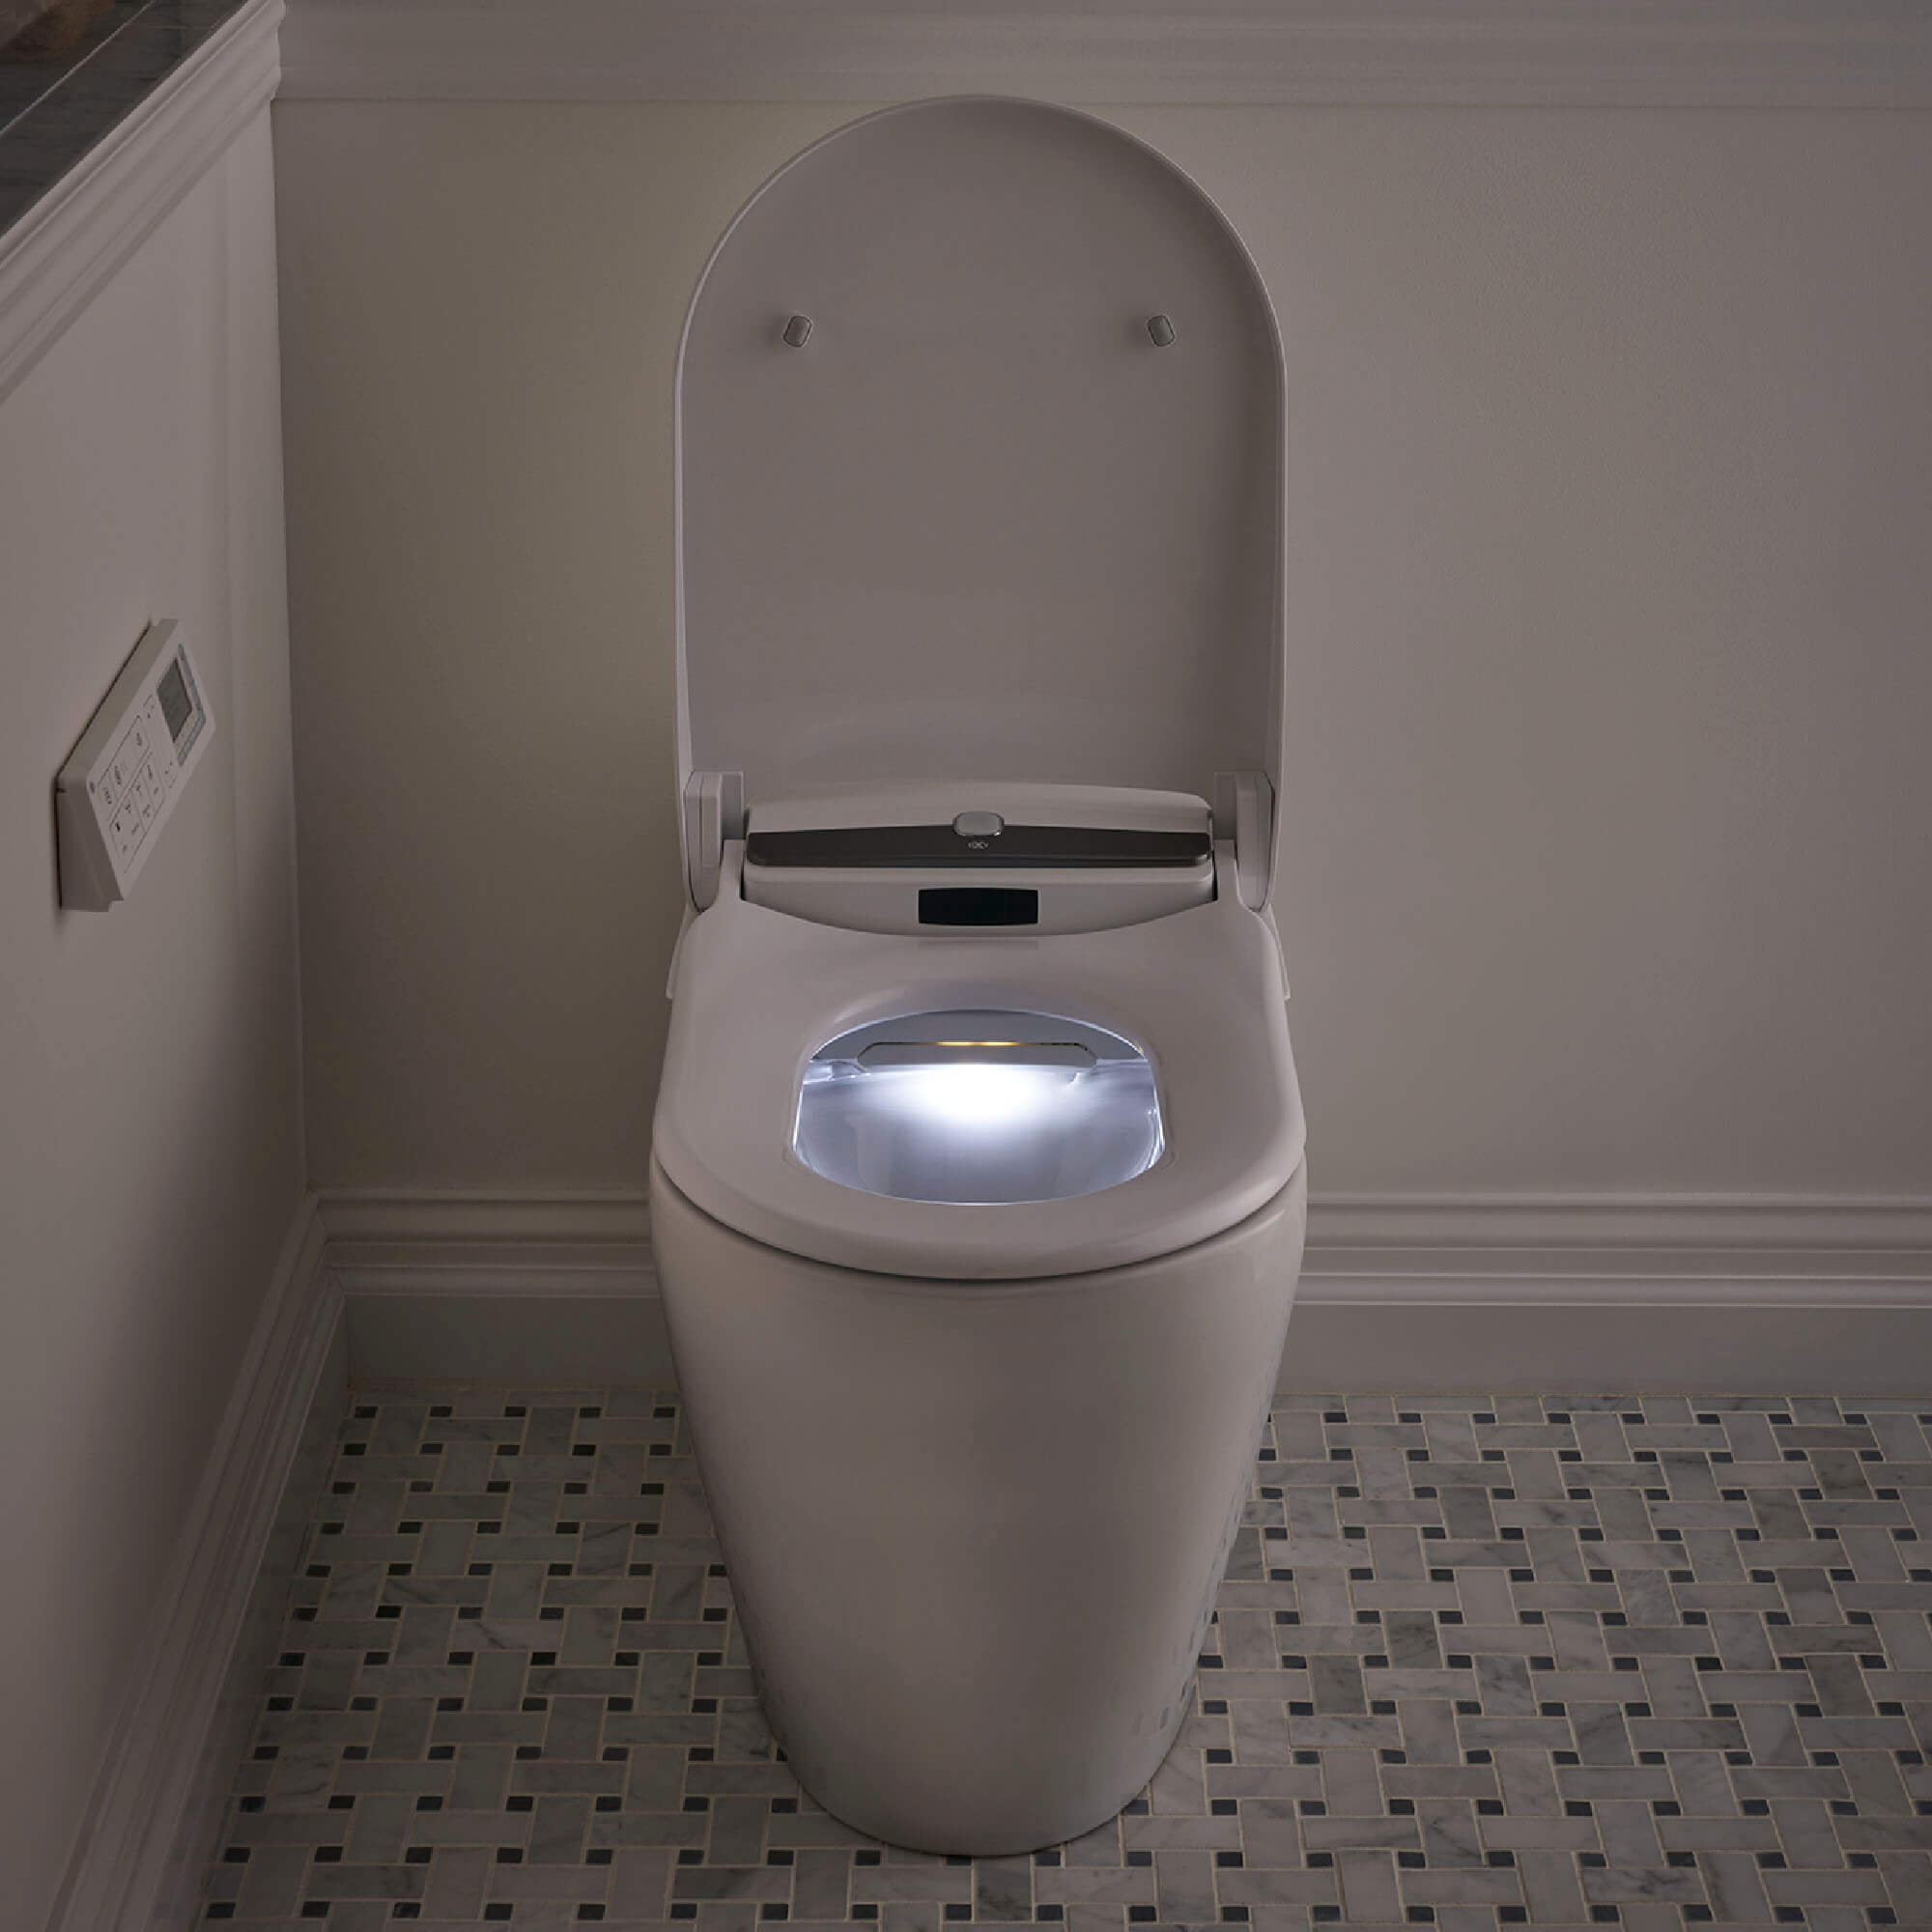 AT200 LS SpaLet Bidet Toilet with Night Light